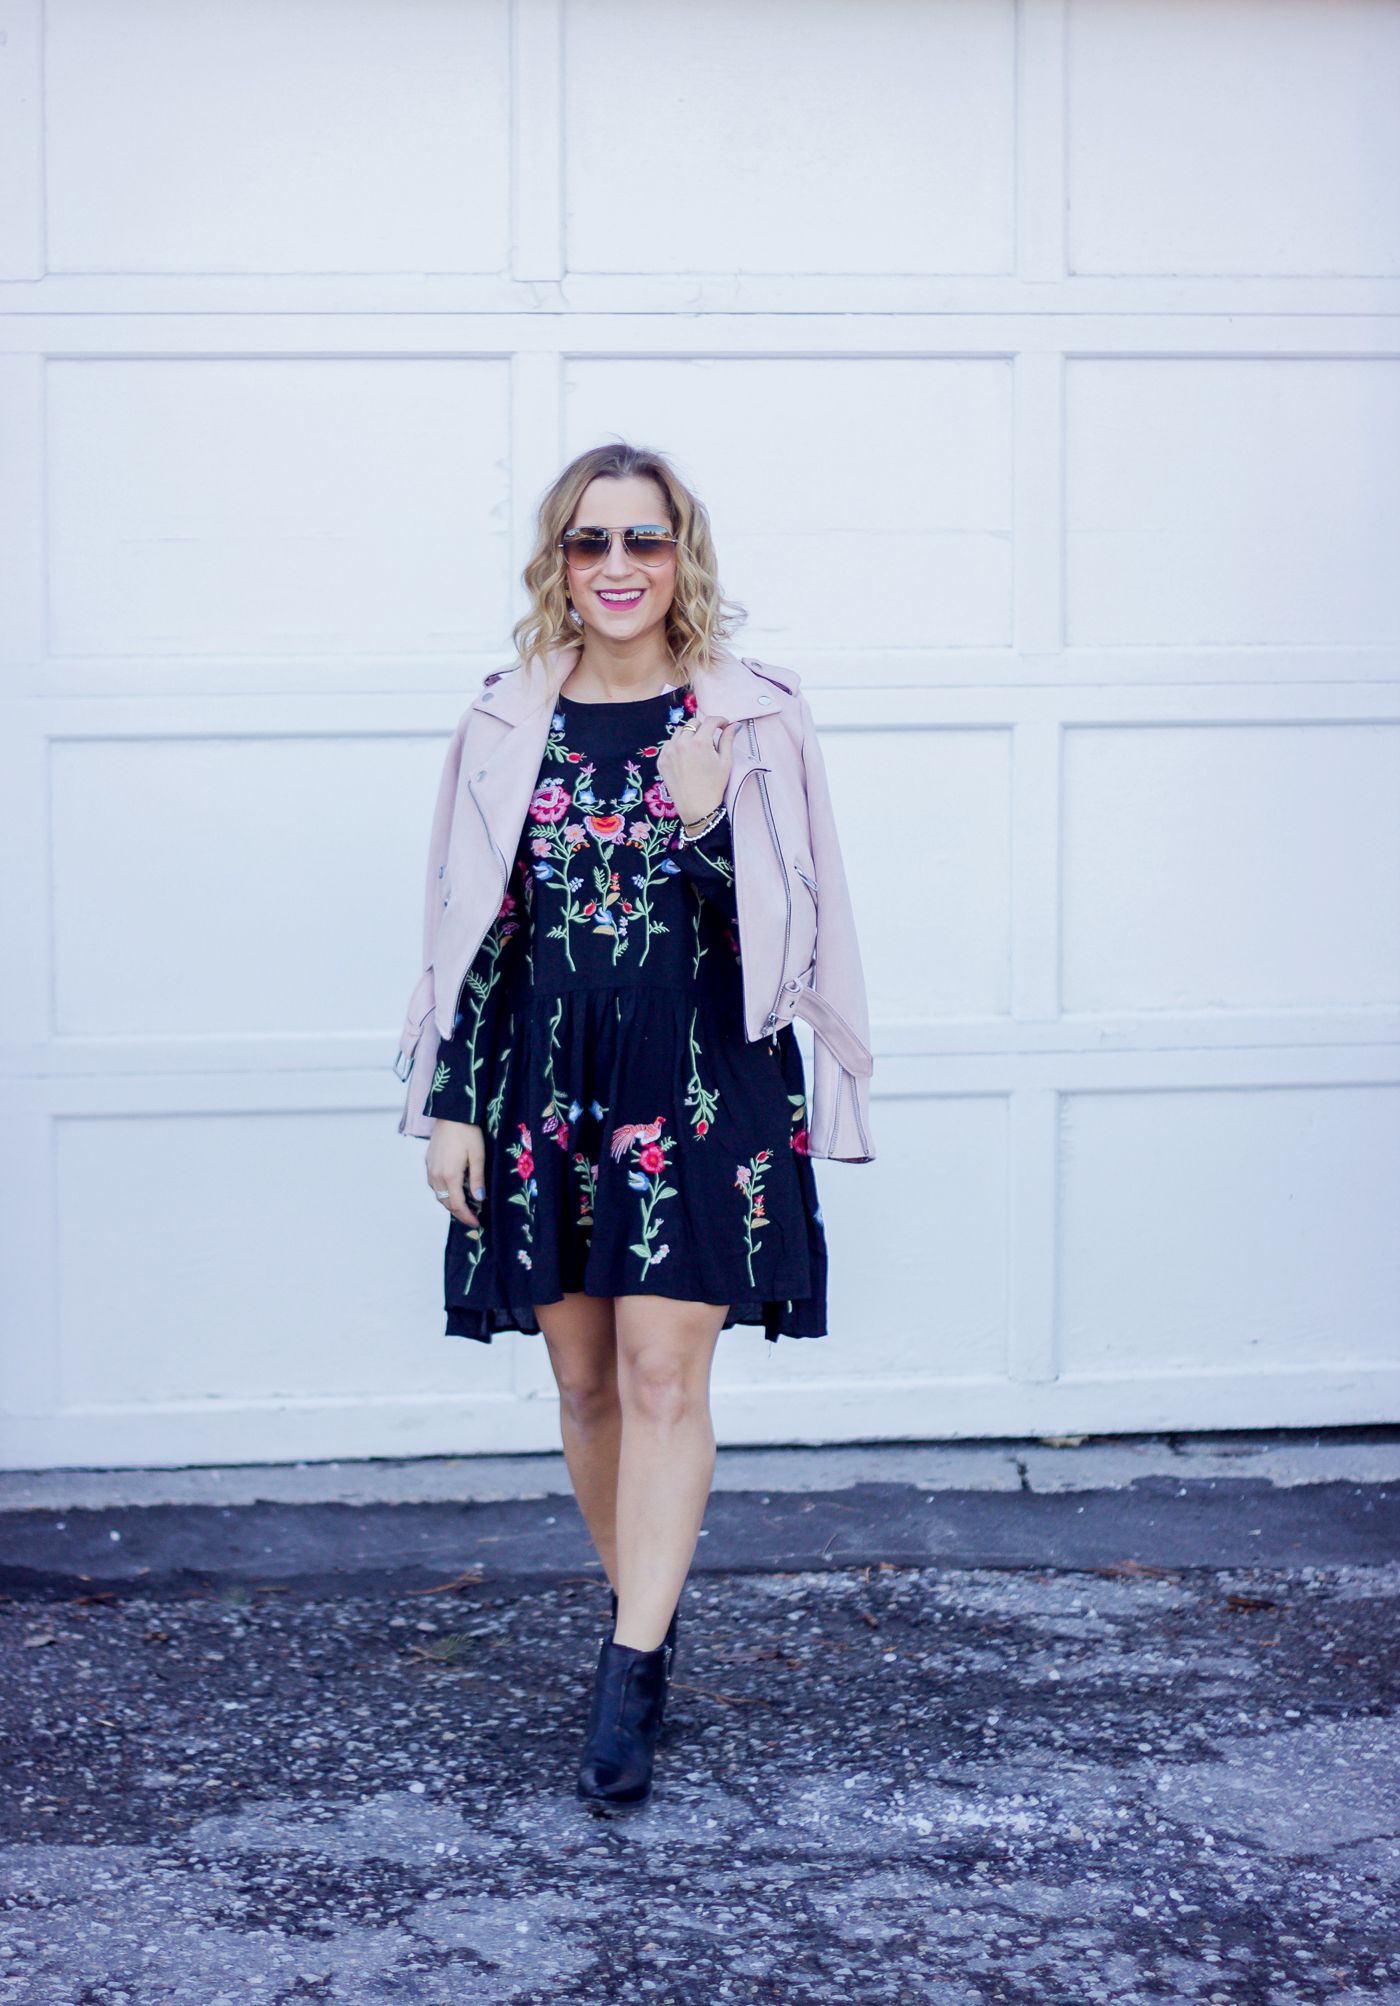 Spring outfit idea, featuring some fashion blogger staples - the suede moto jacket and floral dress